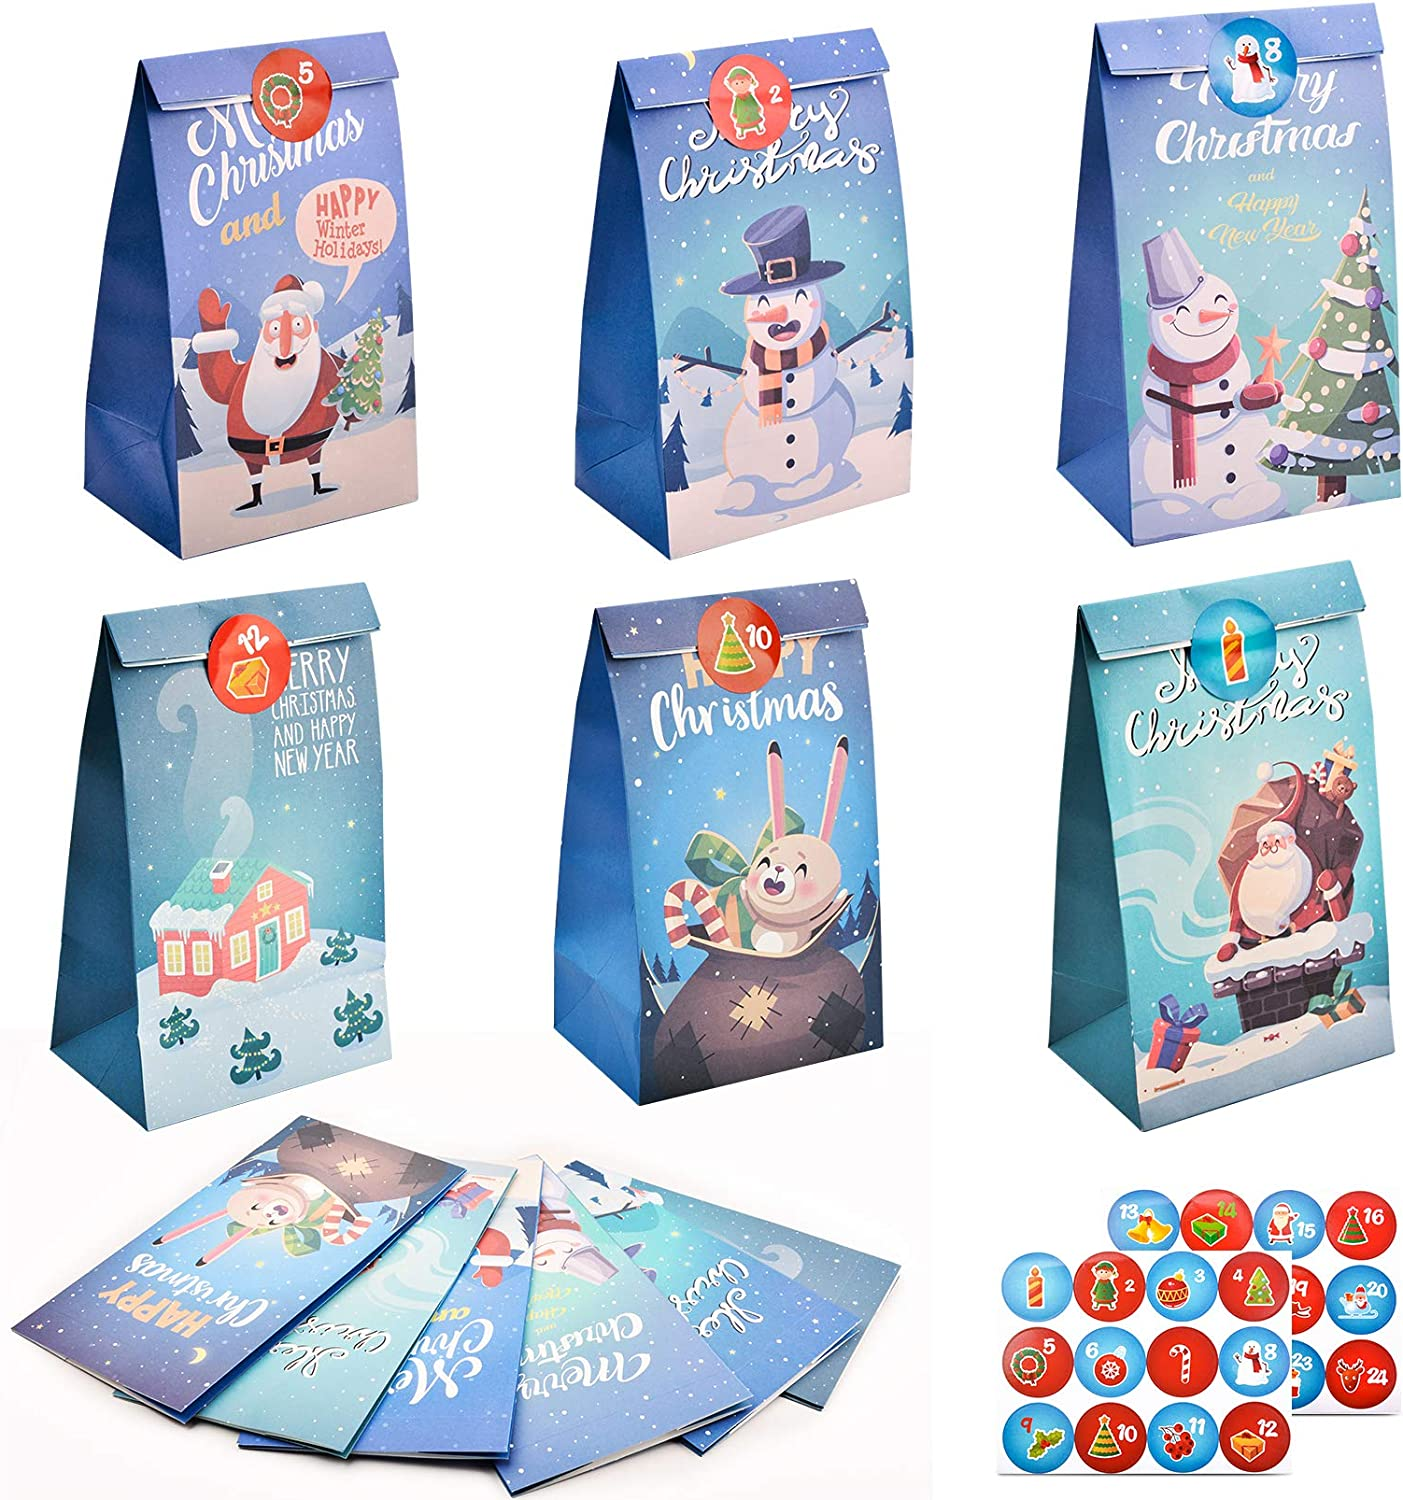 12 Pack Christmas Candy Paper Gift Bags Christmas Goodies Boxes Assortment Party Treat Bags with 2 Pcs Santa Claus Stickers for Parties Supplies